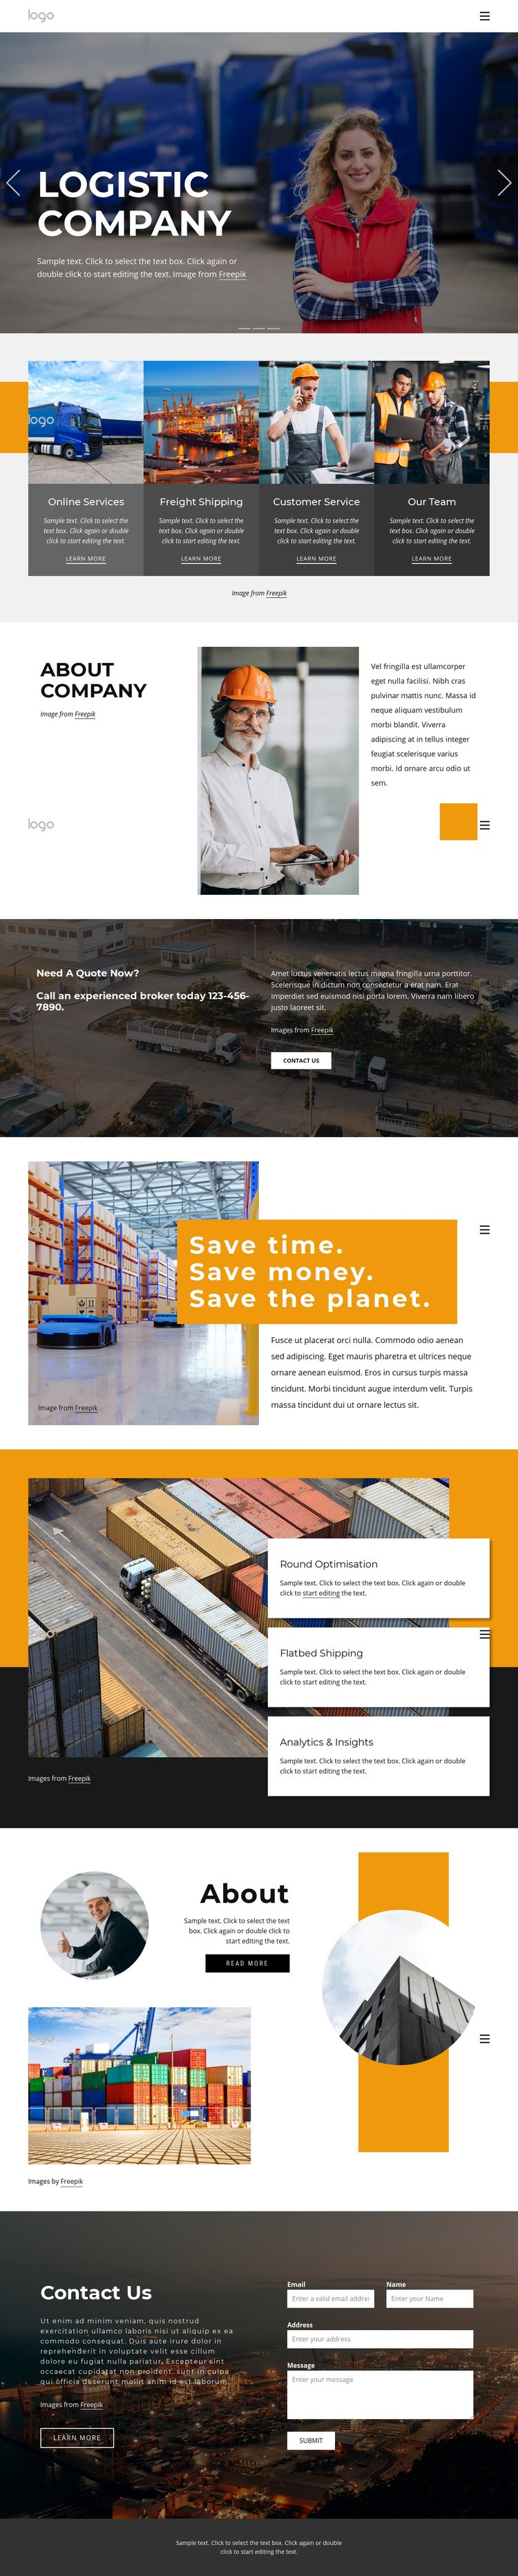 Shipping services and logistics Web Page Design